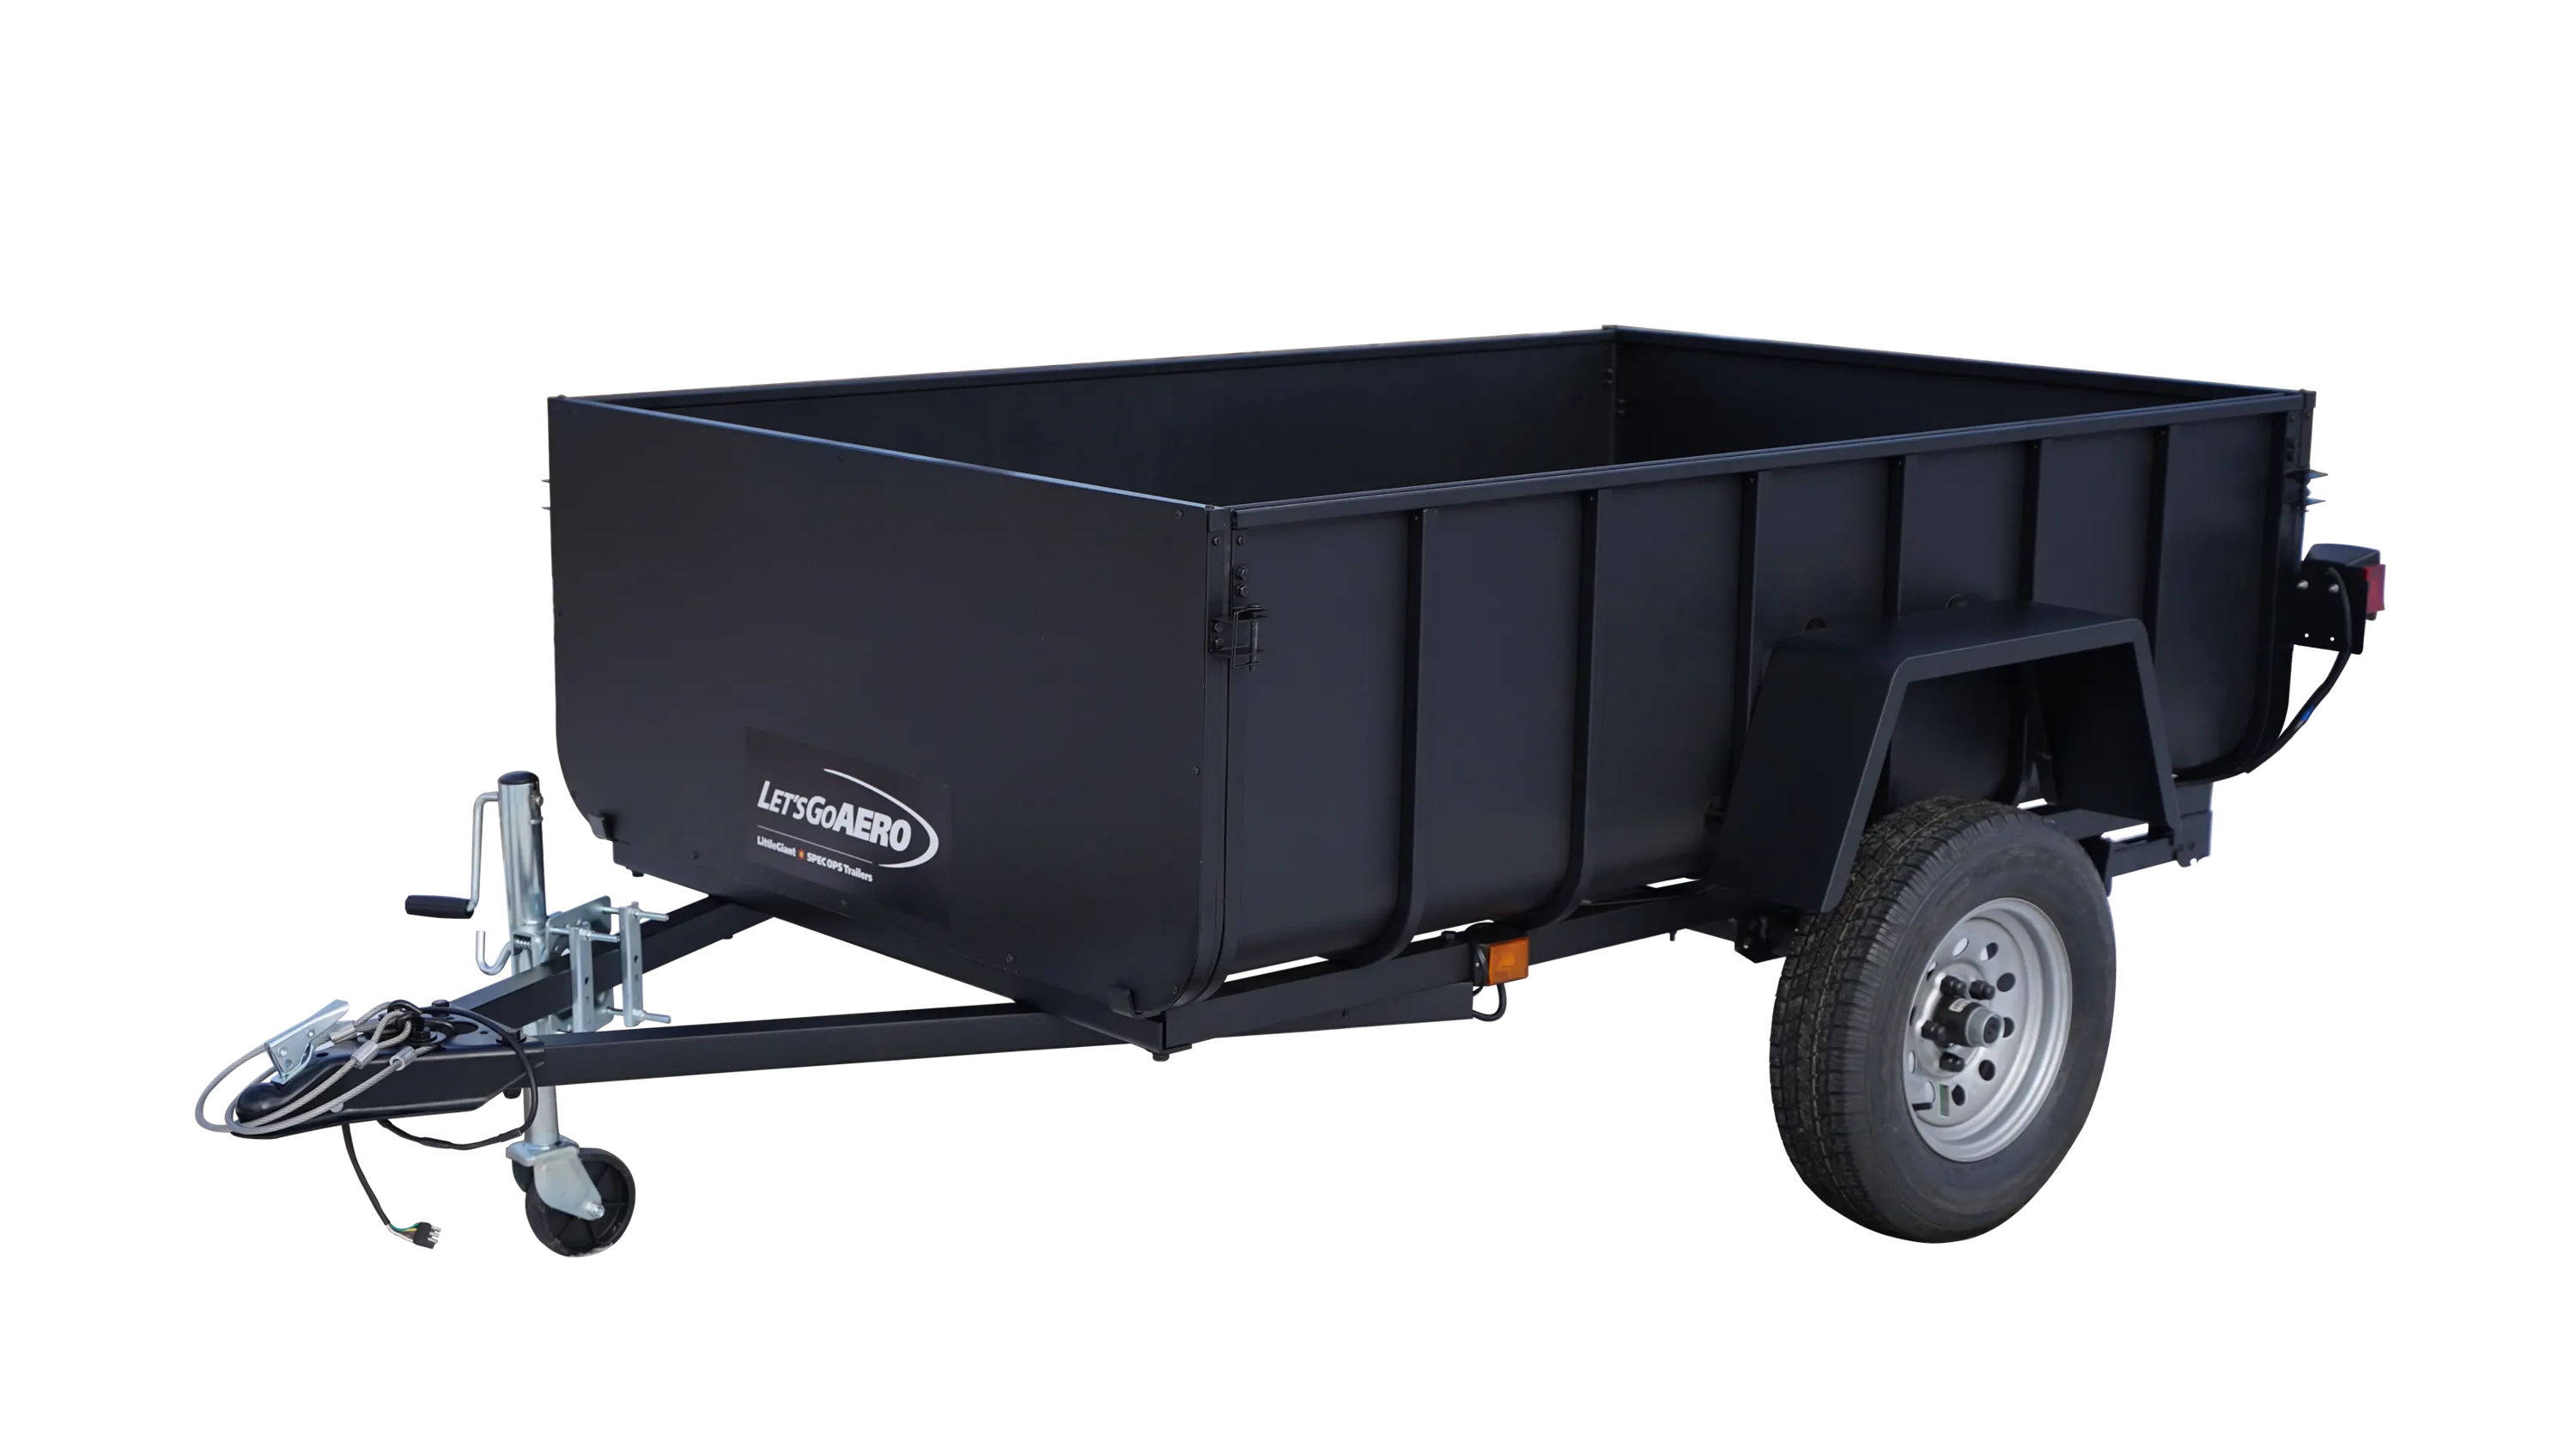 LittleGiant Adventure Sport Utility Trailer